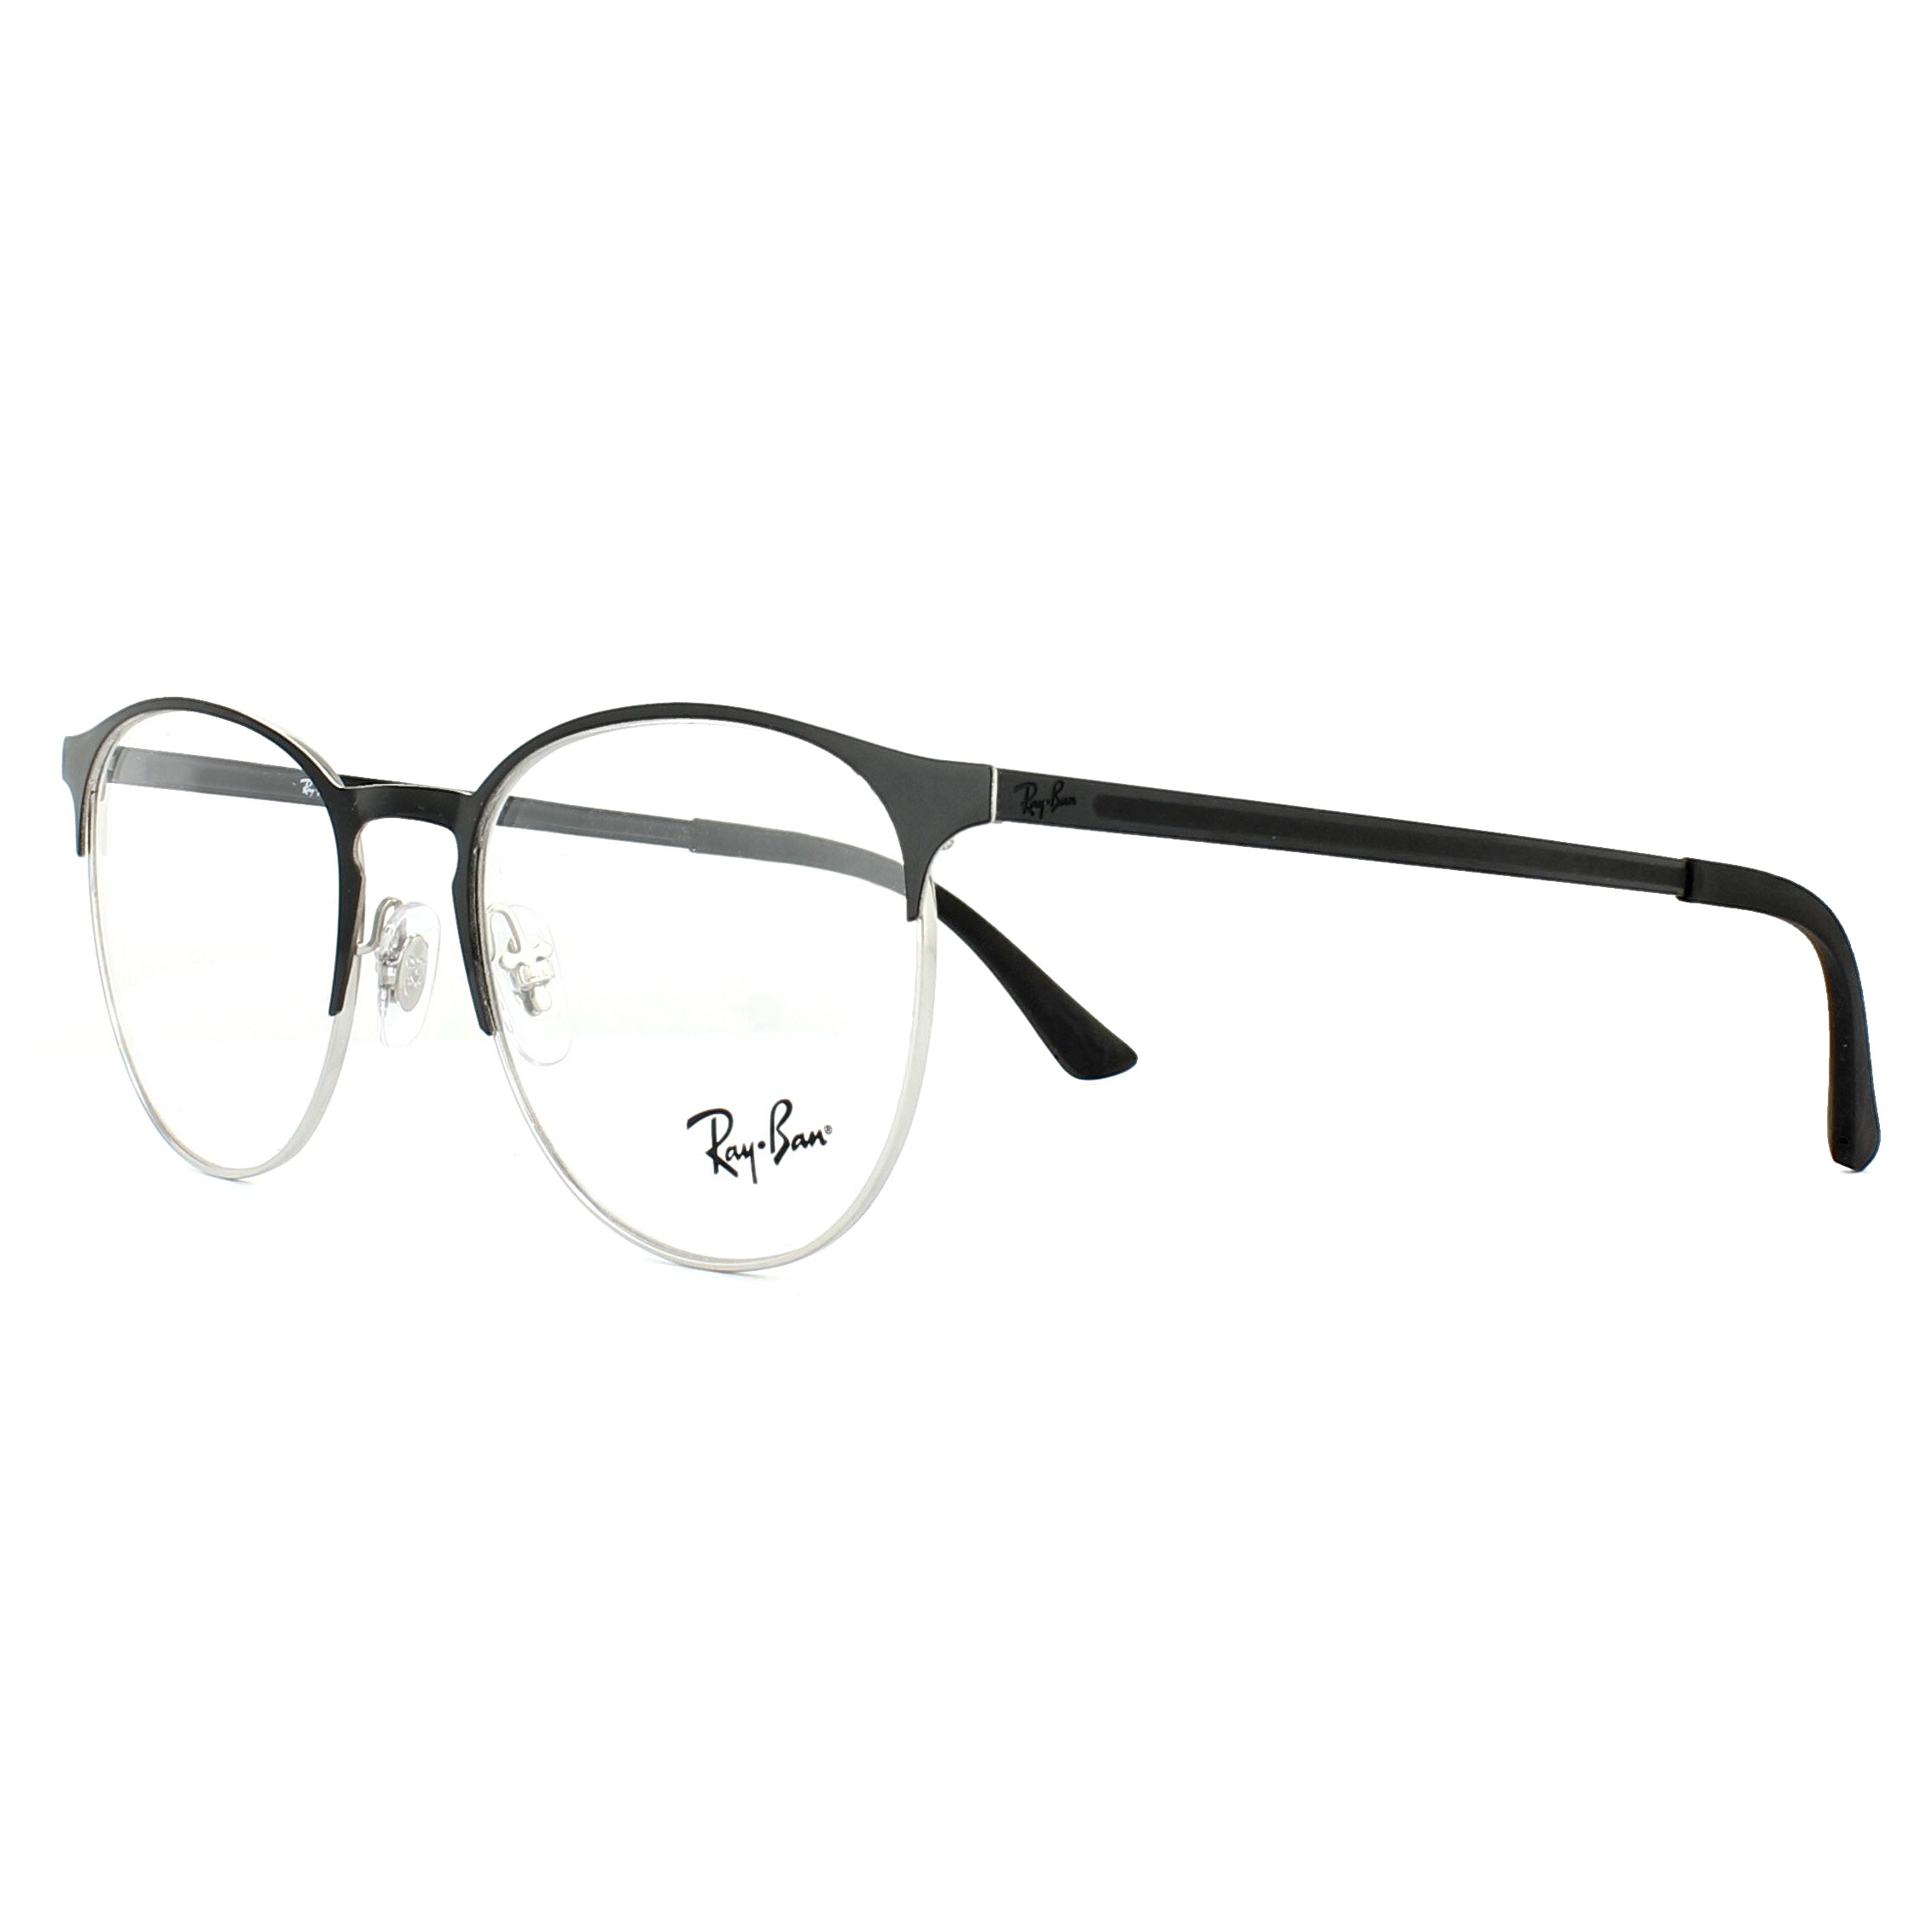 Ray-Ban Glasses Frames 6375 2861 Silver on Top Black 51mm ...